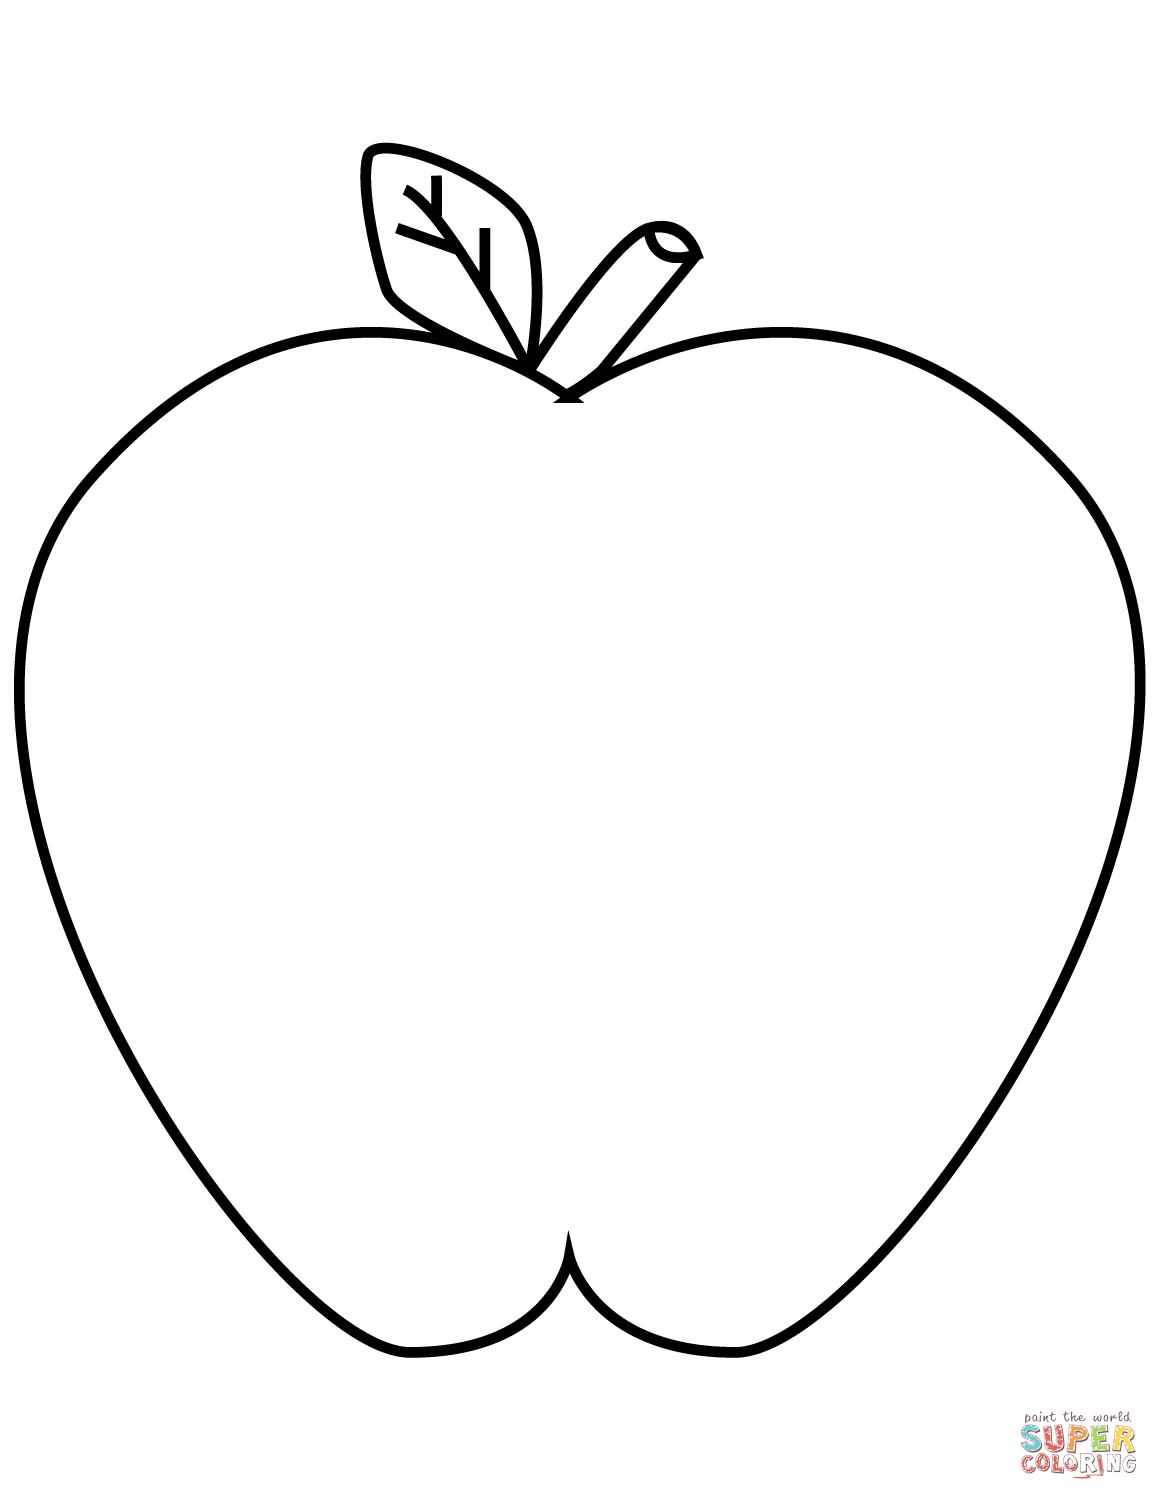 printable apple pictures green apple coloring page free printable coloring pages apple printable pictures